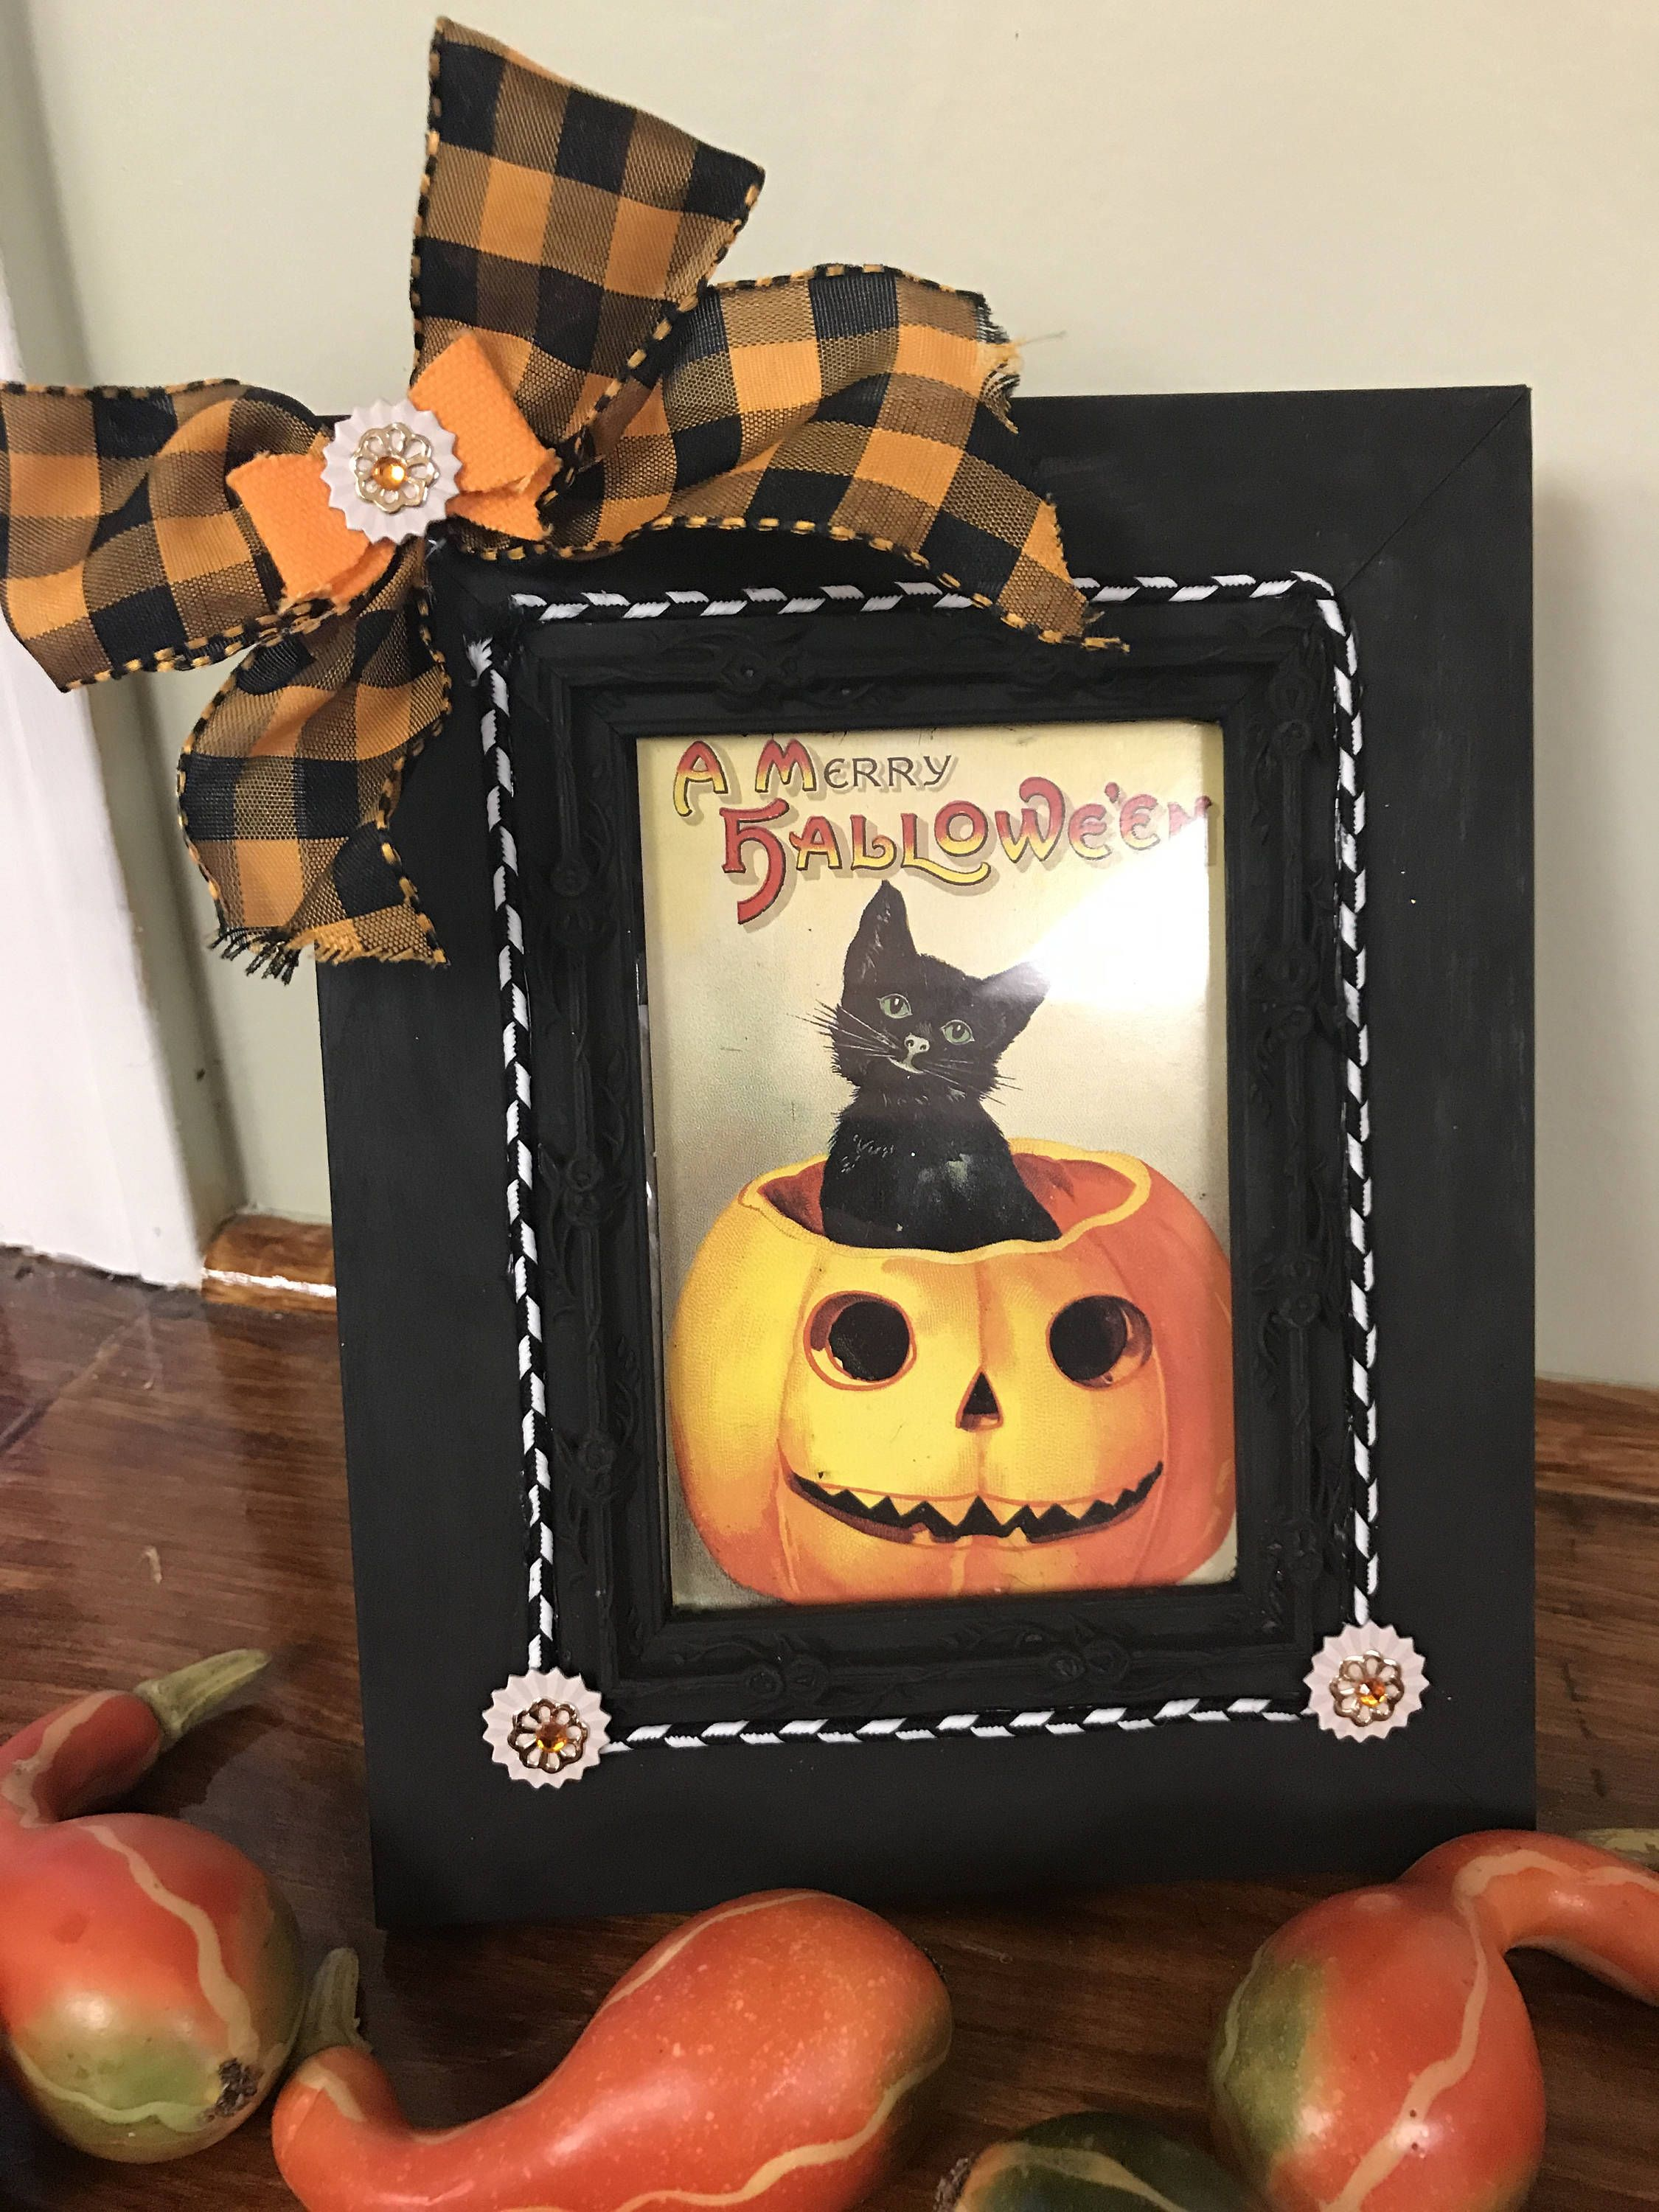 Halloween Decoration Vintage Halloween Picture Frame Handmade - Primitive Halloween Decor